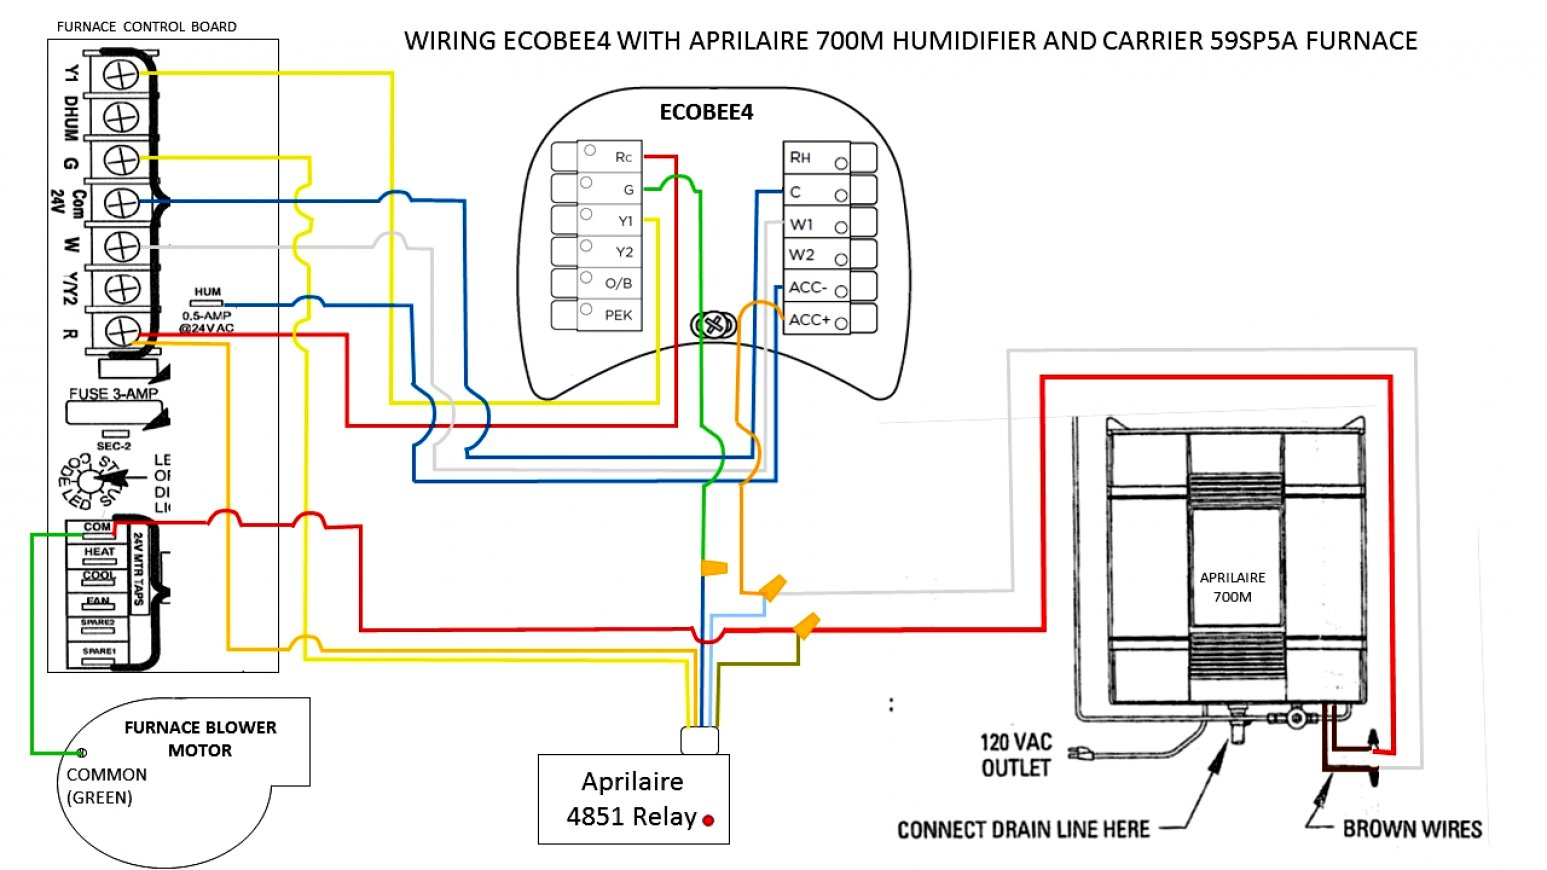 Aprilaire 440 Wiring Diagram | Wiring Diagram - Aprilaire 224 Wiring Diagram Nest